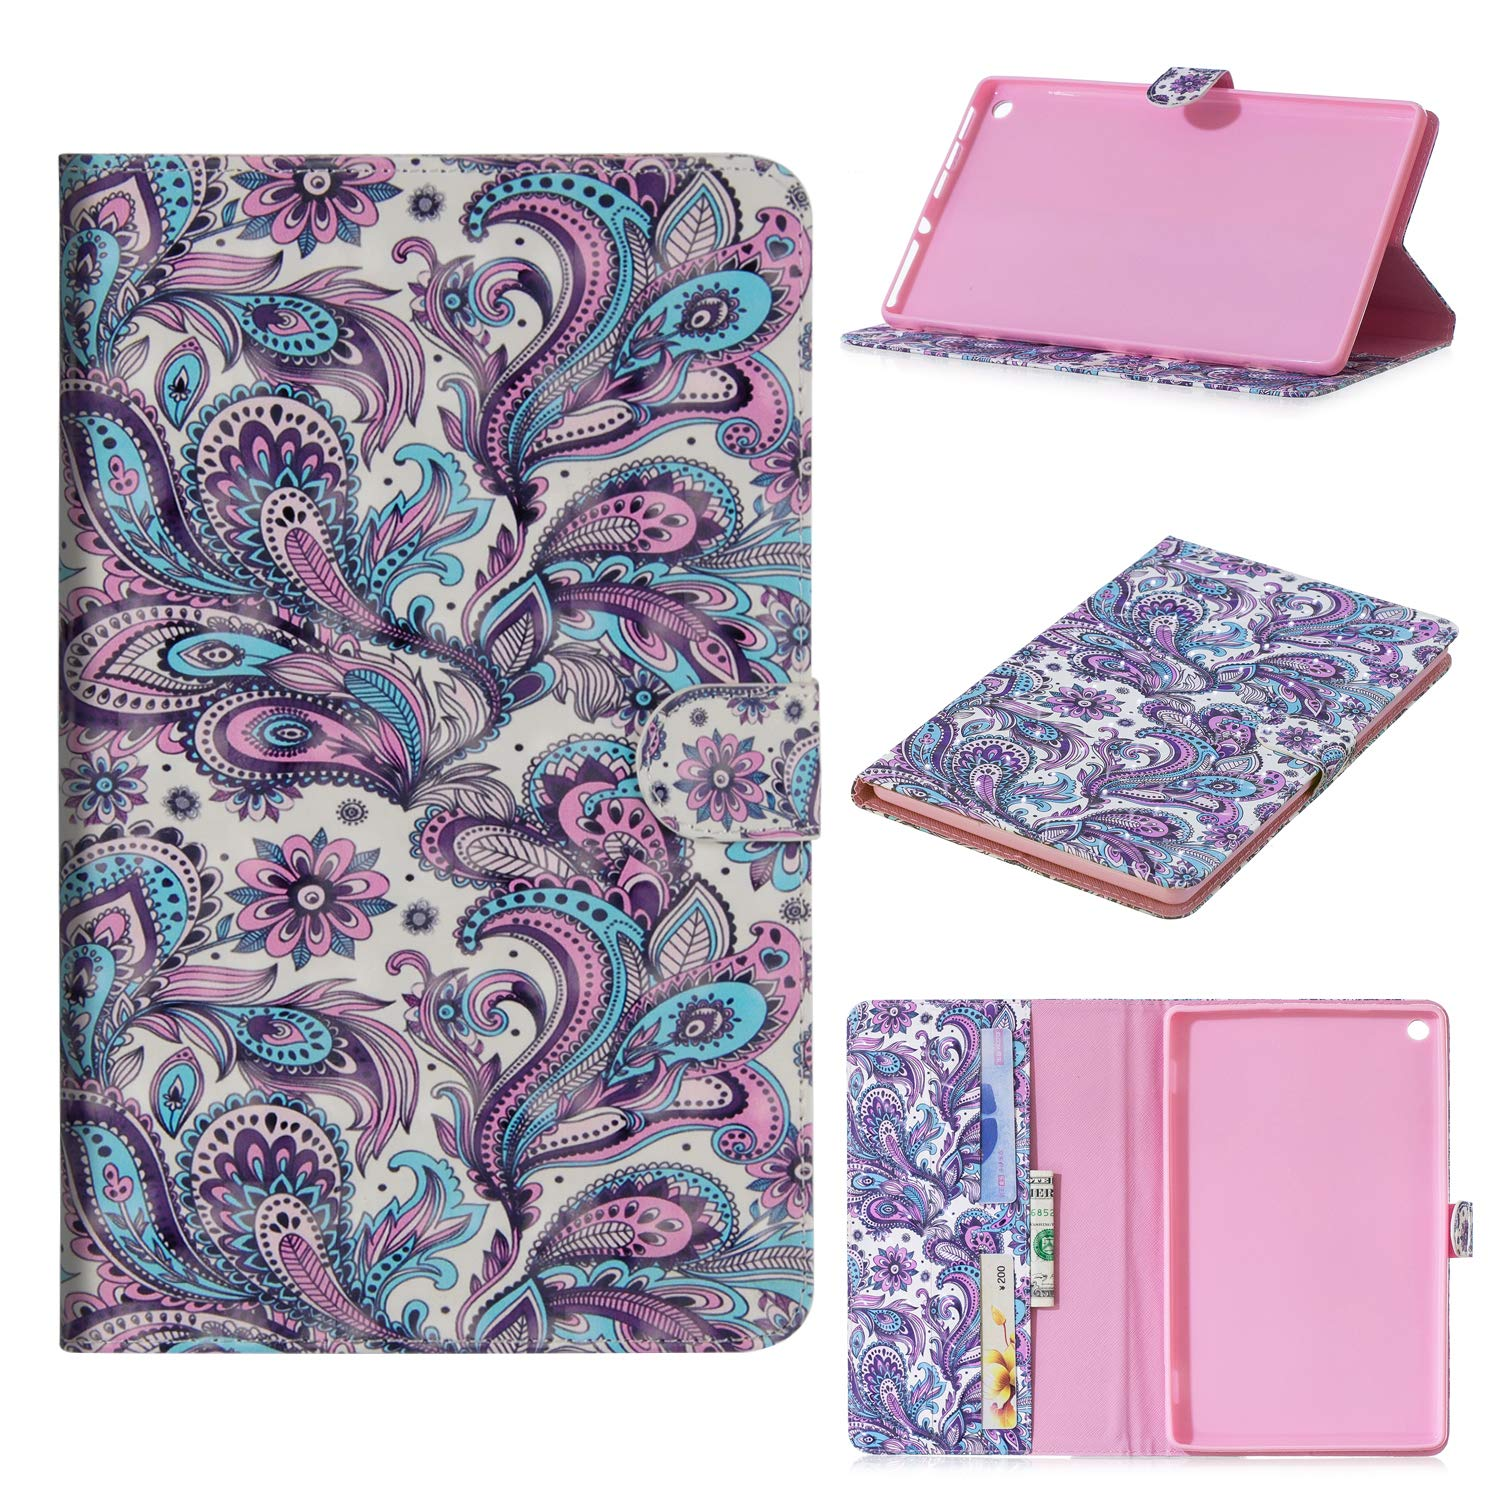 JCTek Fire HD 10 Tablet Case, Ultra Slim Leather Wallet Case Auto Wake/Sleep Smart Case, 2017 (Colorful owl) Fire HD 10 2017